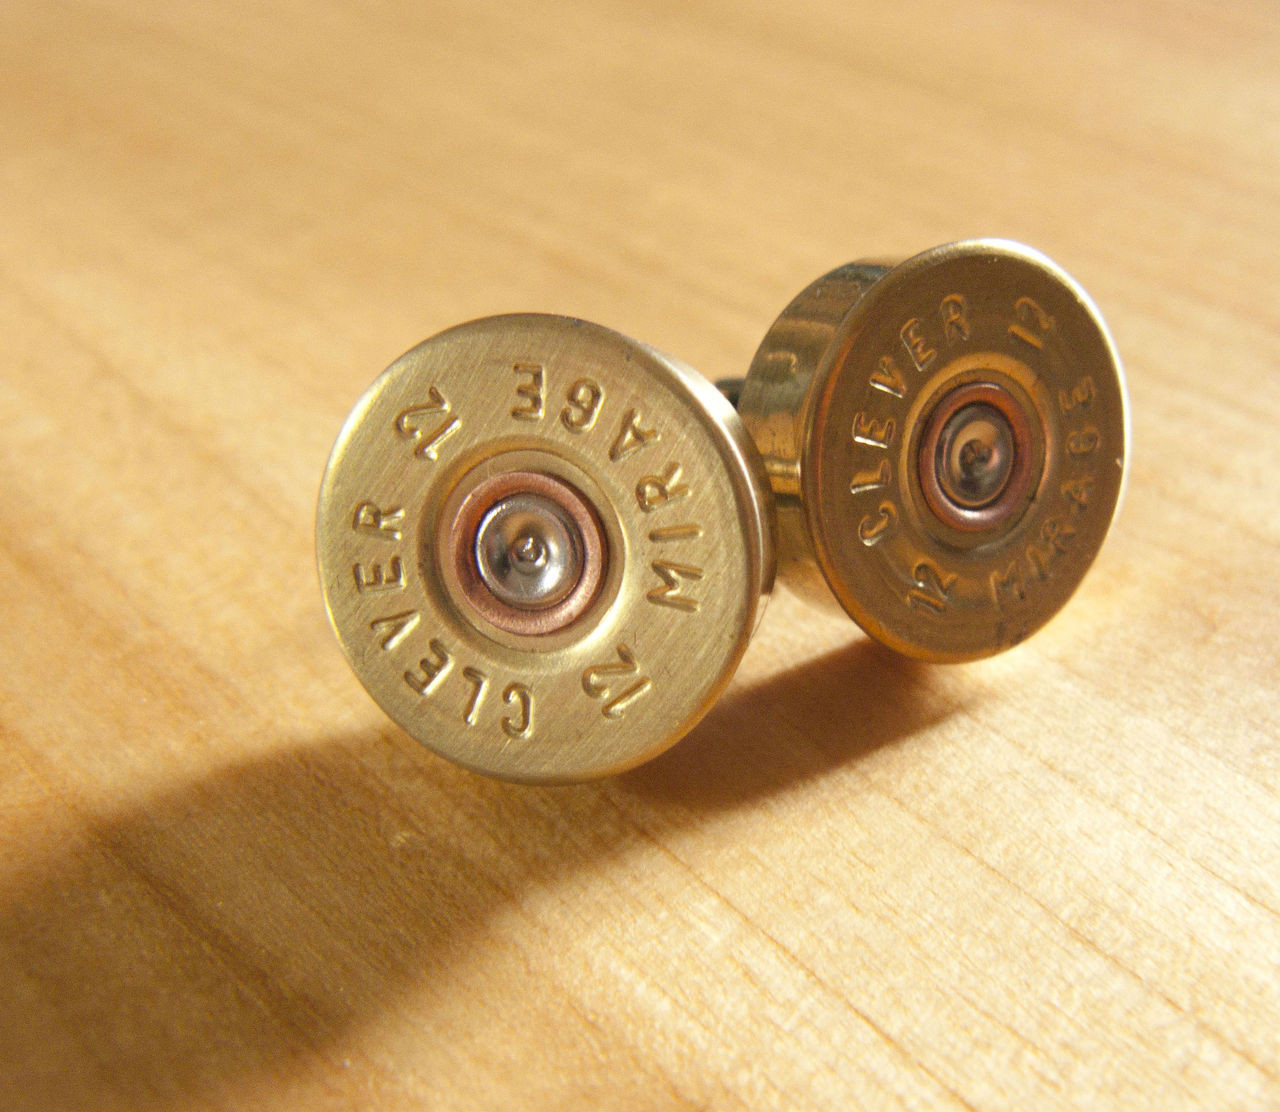 Jamie Boult 12 Bore Shotgun Cartridge Cufflinks